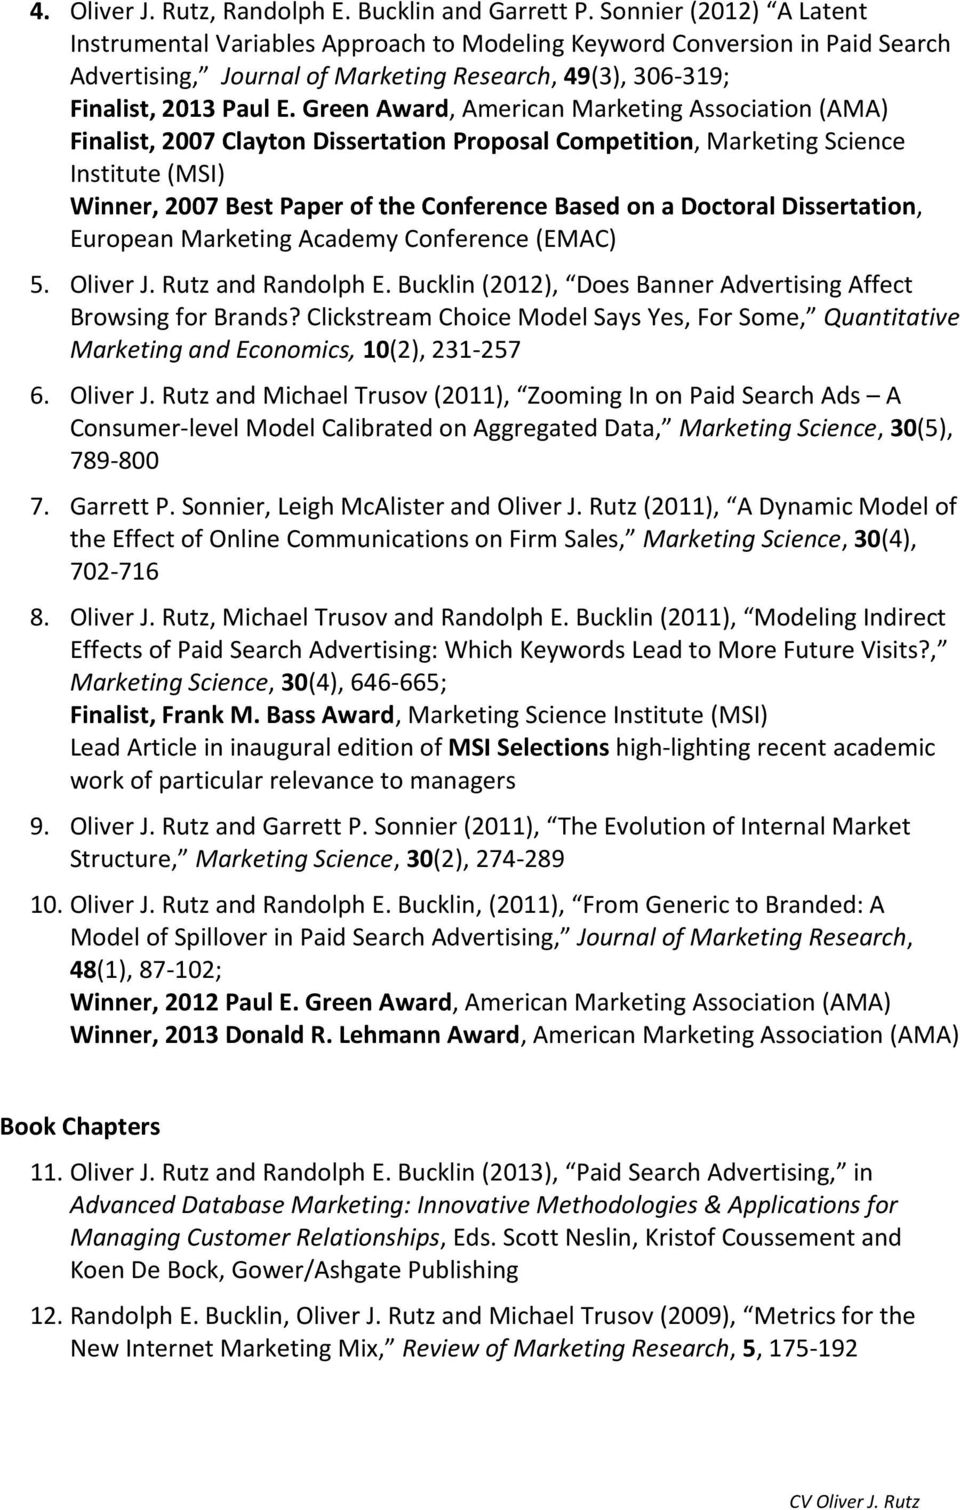 Green Award, American Marketing Association (AMA) Finalist, 2007 Clayton Dissertation Proposal Competition, Marketing Science Institute (MSI) Winner, 2007 Best Paper of the Conference Based on a